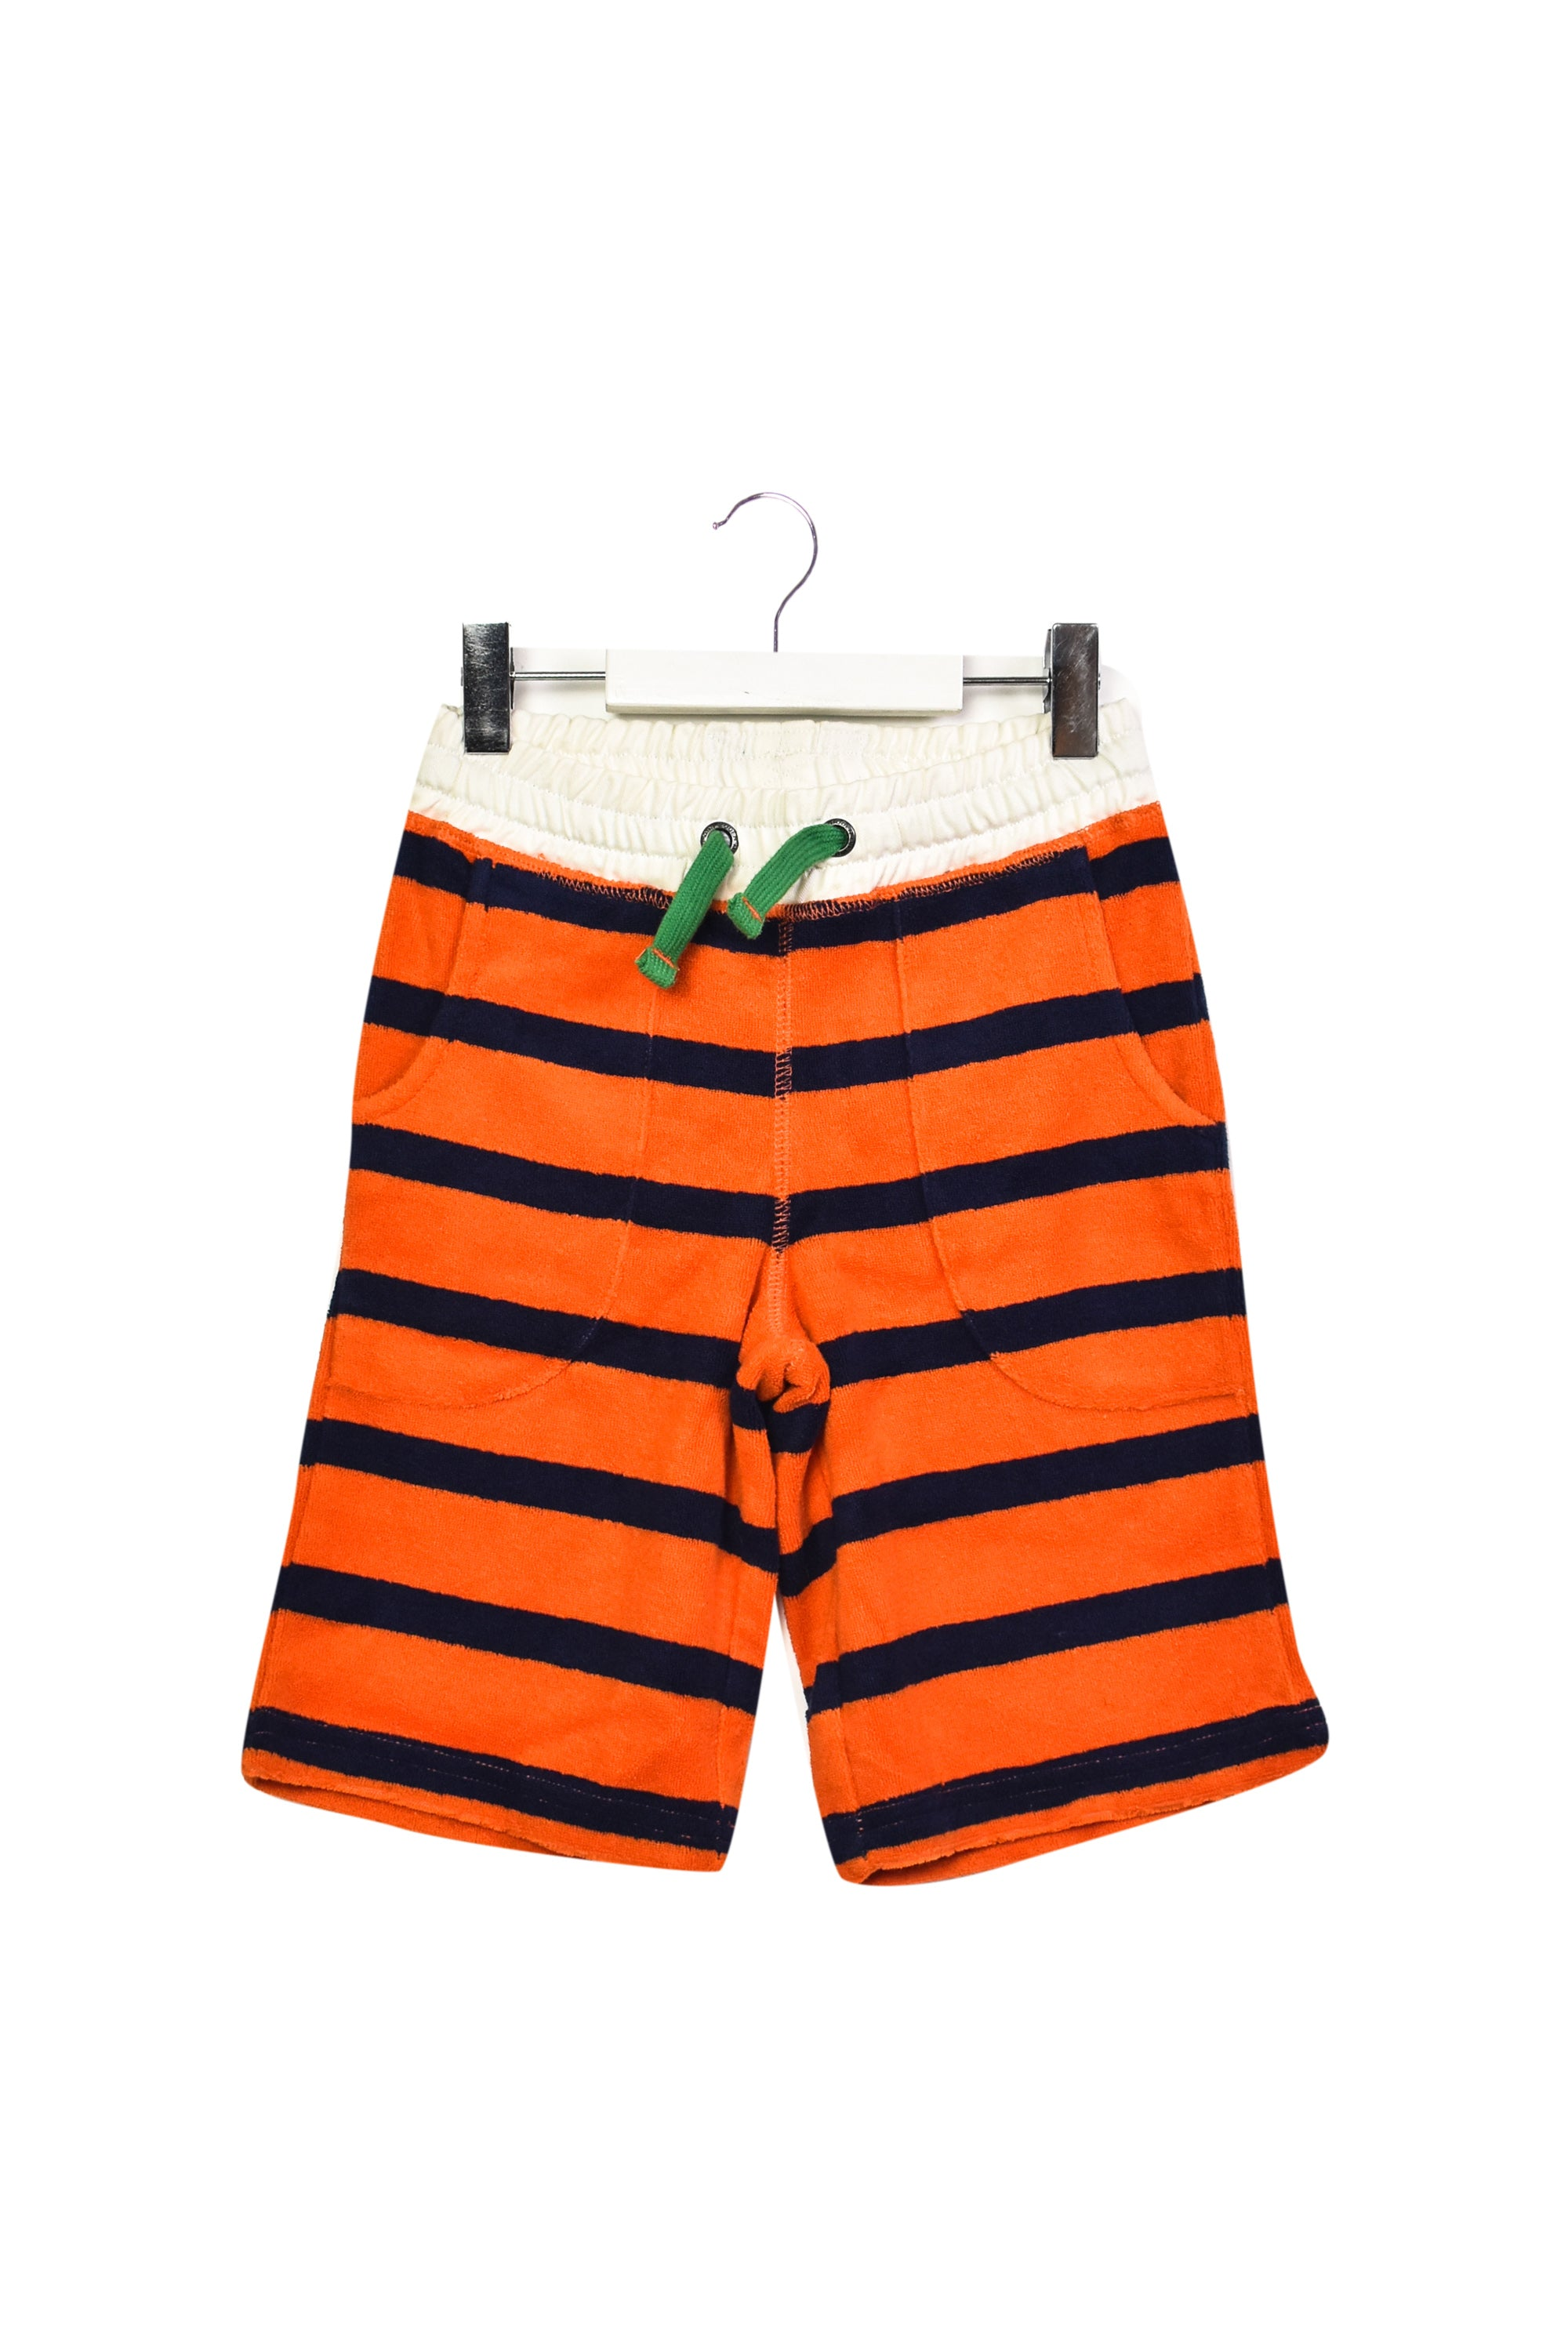 10014667 Boden Kids ~ Pants 4T at Retykle